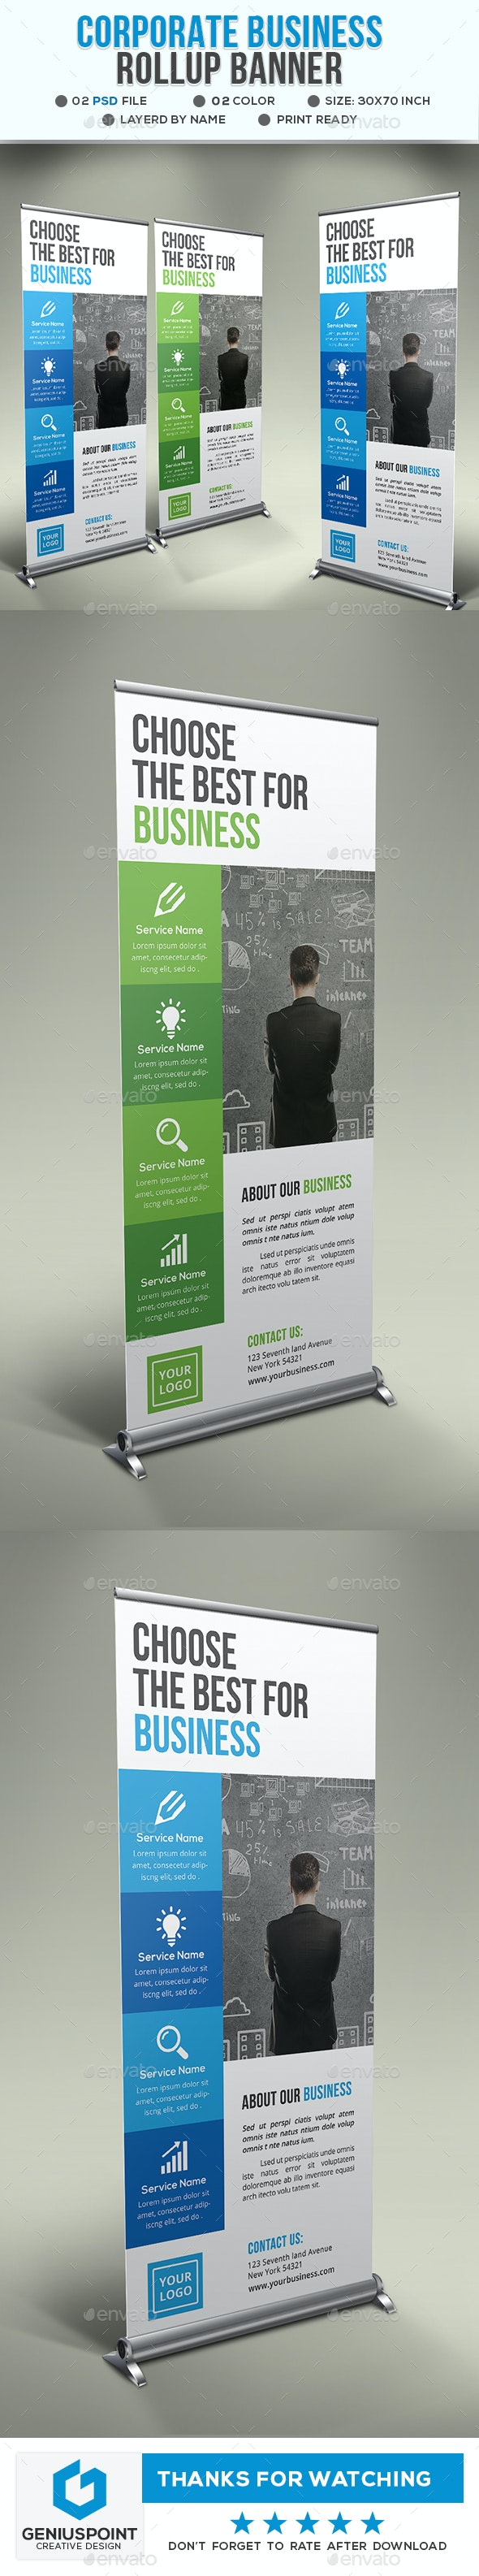 Corporate Business Roll Up Banner - Signage Print Templates